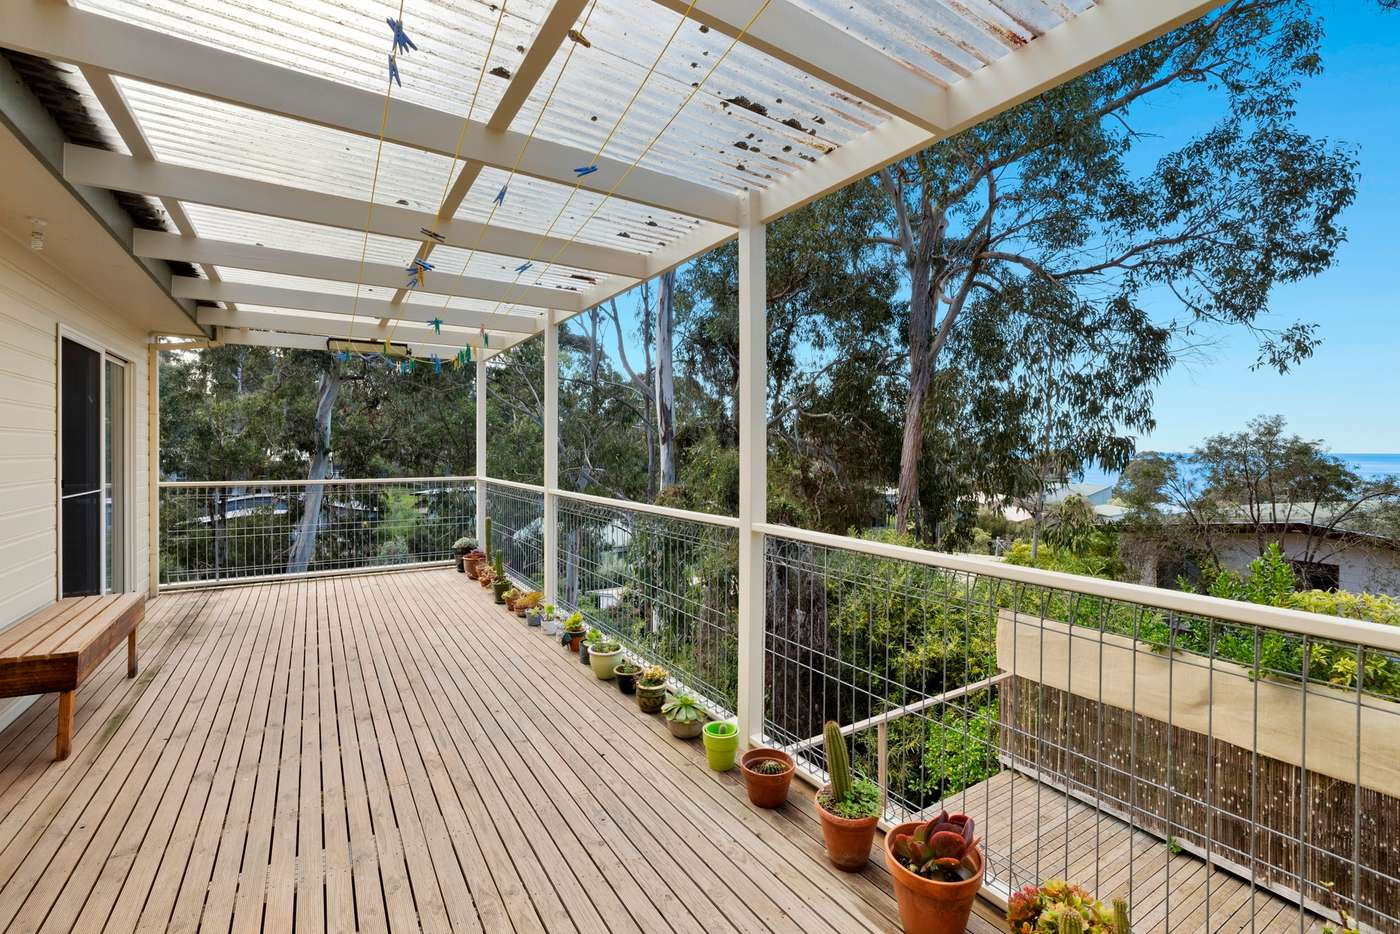 Fifth view of Homely house listing, 14A Belvedere Terrace, Lorne VIC 3232